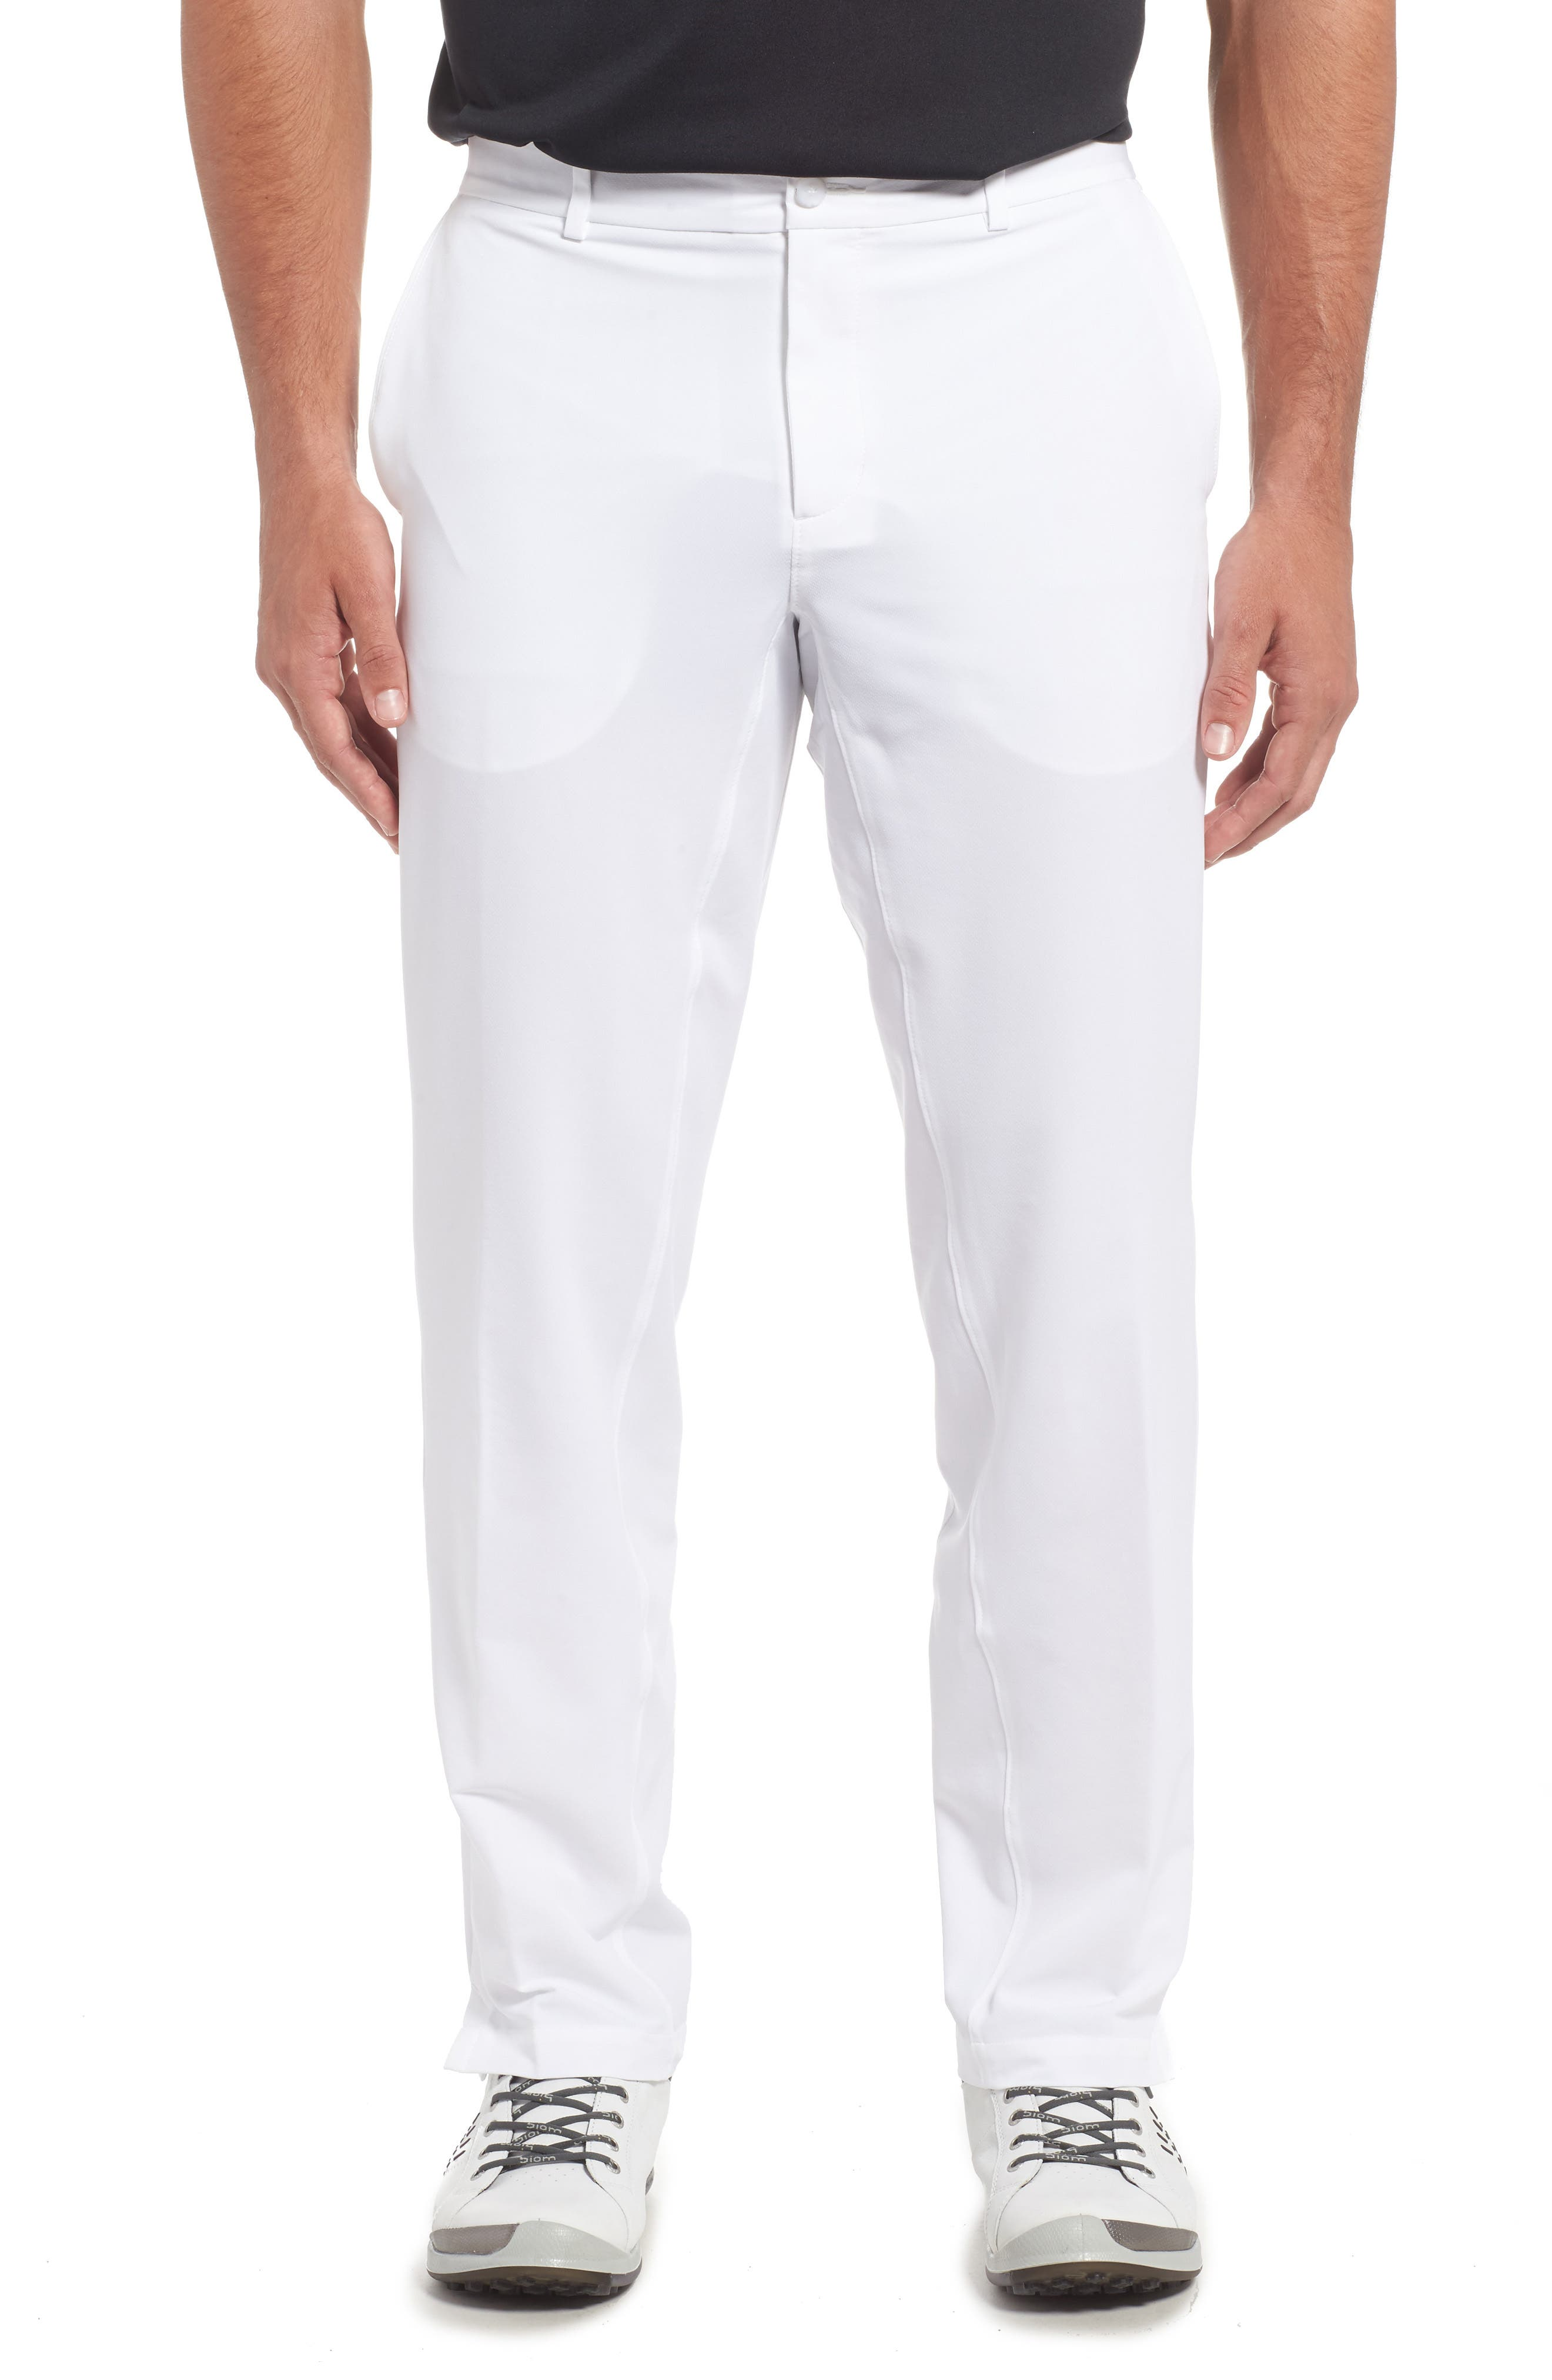 Alternate Image 1 Selected - Nike Hybrid Flex Golf Pants